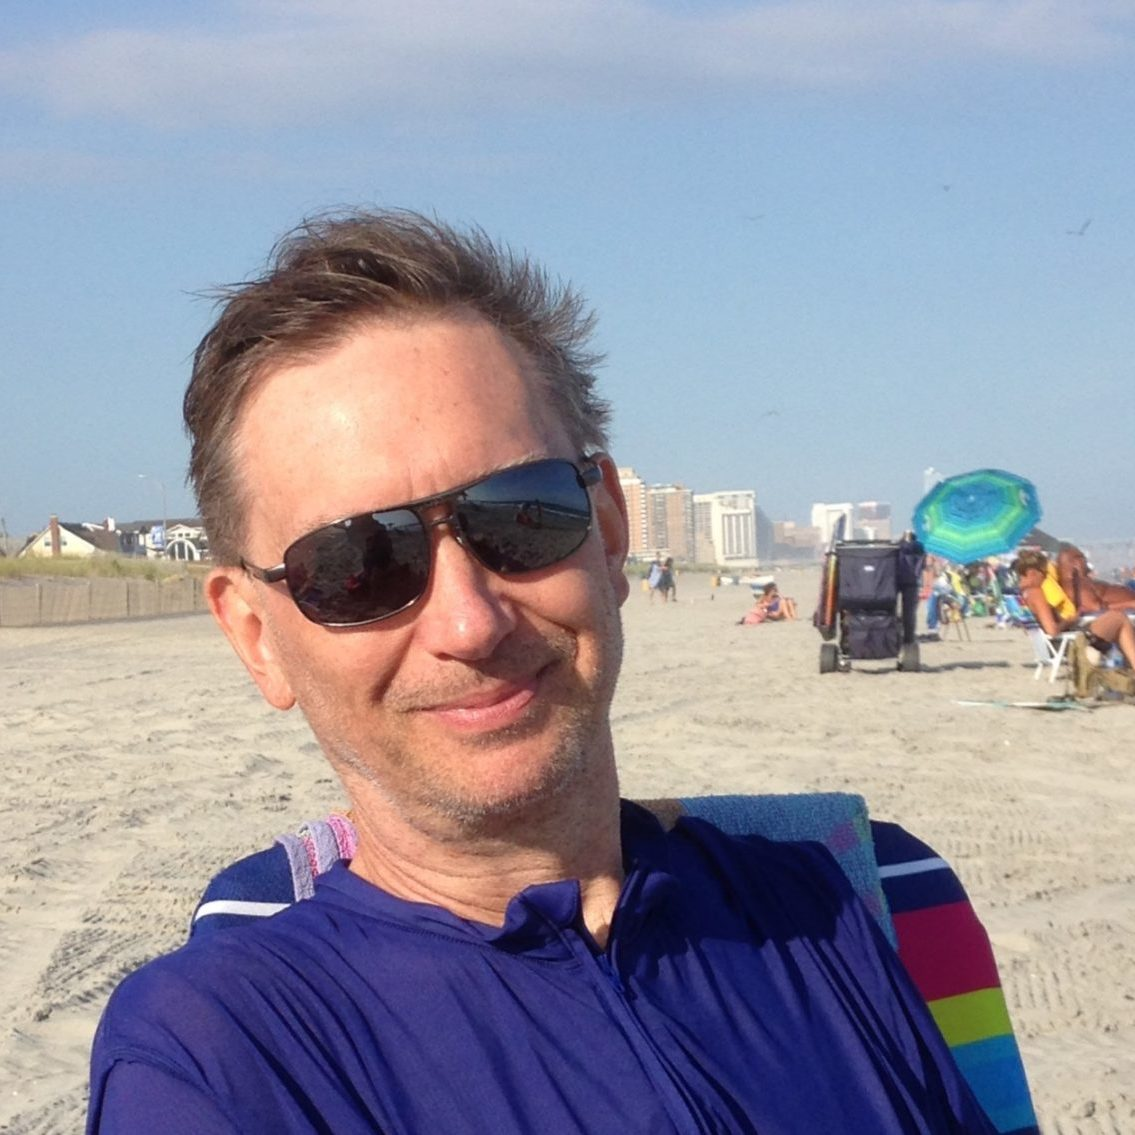 Andrew Levy author photo, at a beach, sitting in a beach chair, wearing sunglasses